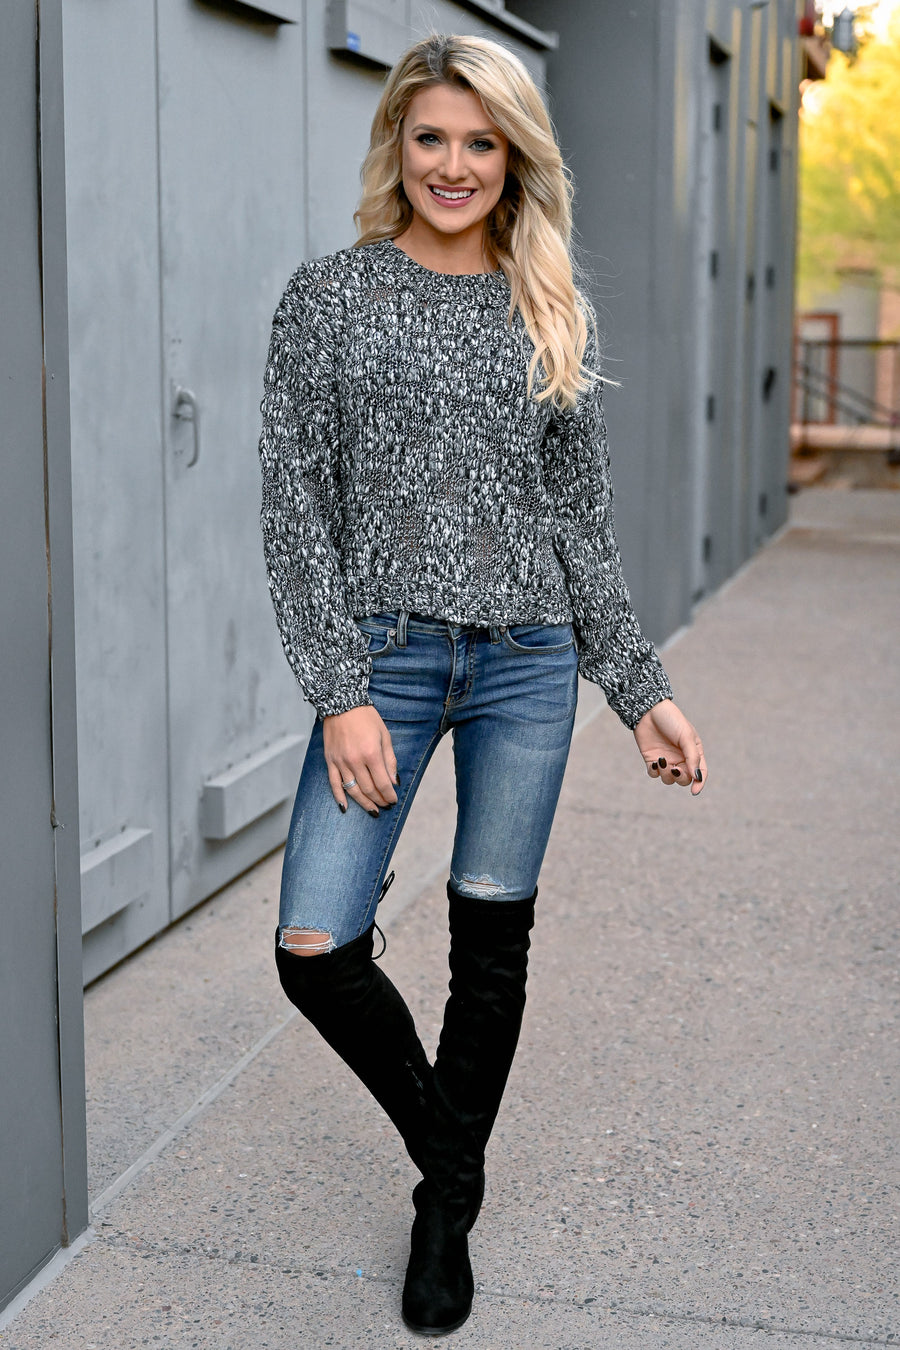 Tomorrow Will Come Knit Sweater - Black & White womens trendy long sleeve textured sweater closet candy front close